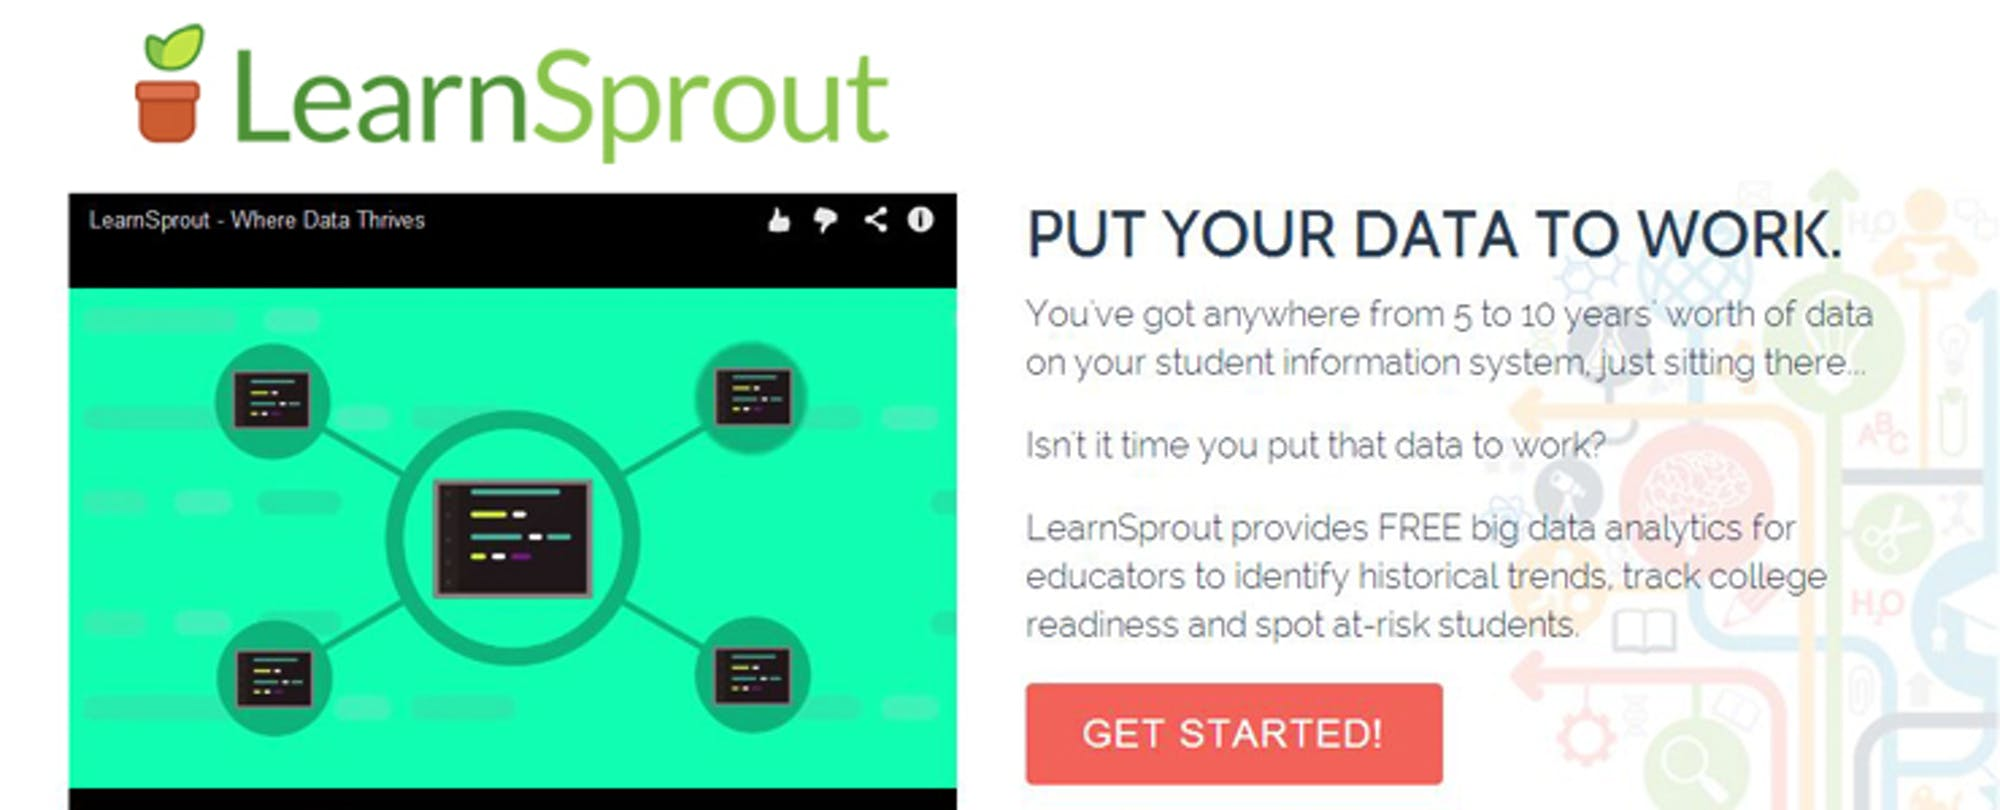 LearnSprout Pivots, Raises $4.2 Million